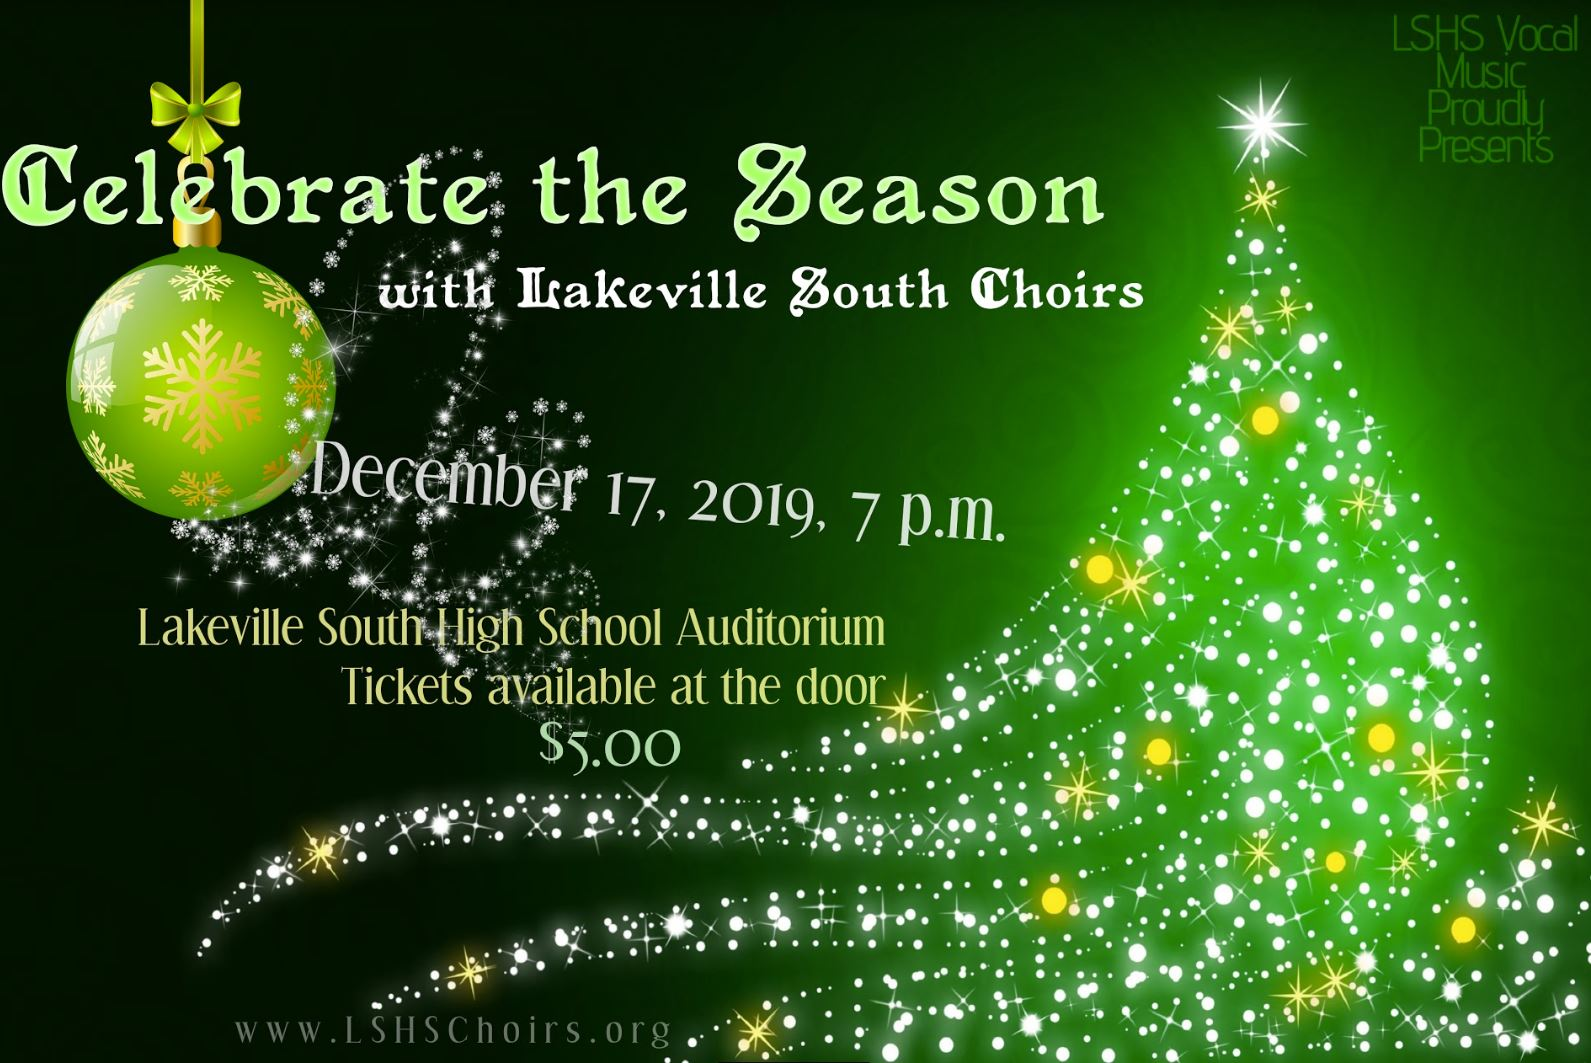 CELEBRATE the SEASON with Lakeville South Choirs